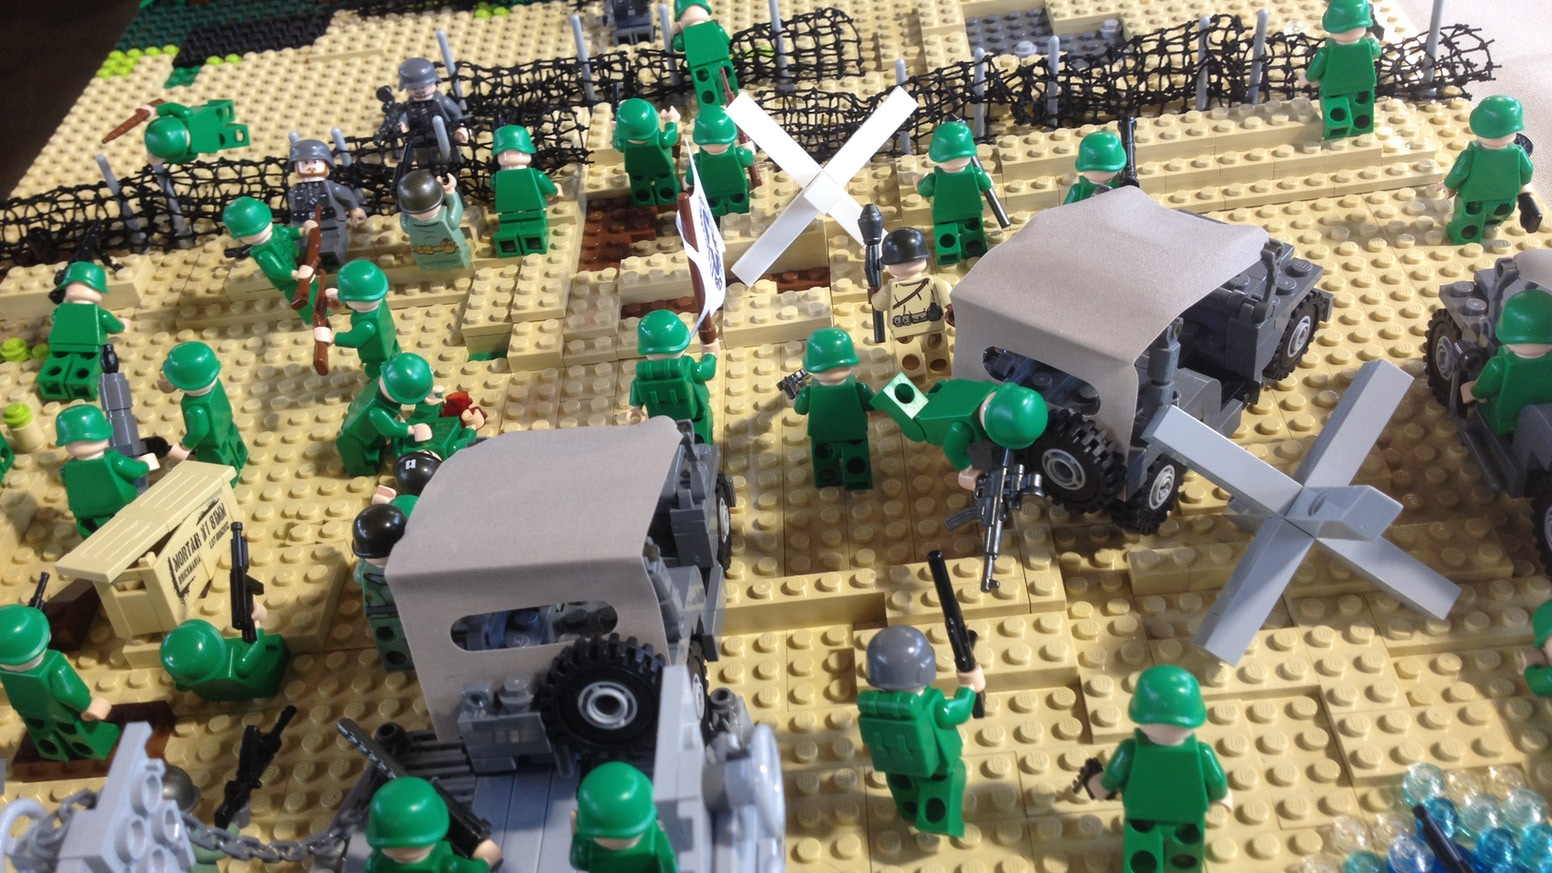 Lego World War 2: Three Designs from a 9-year-old's Vision by